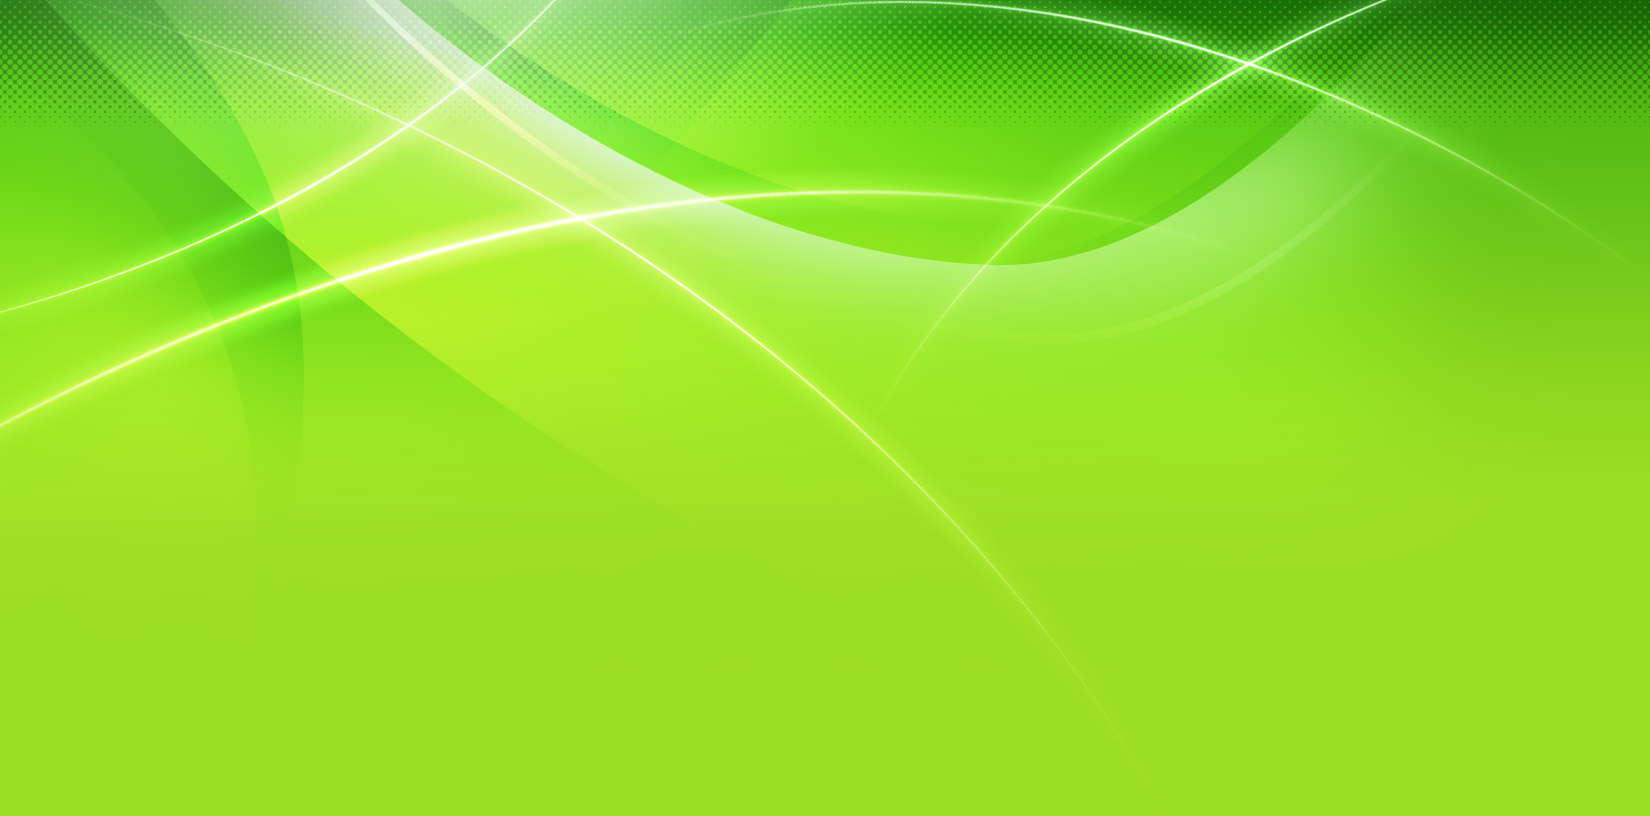 Green background clipart #9